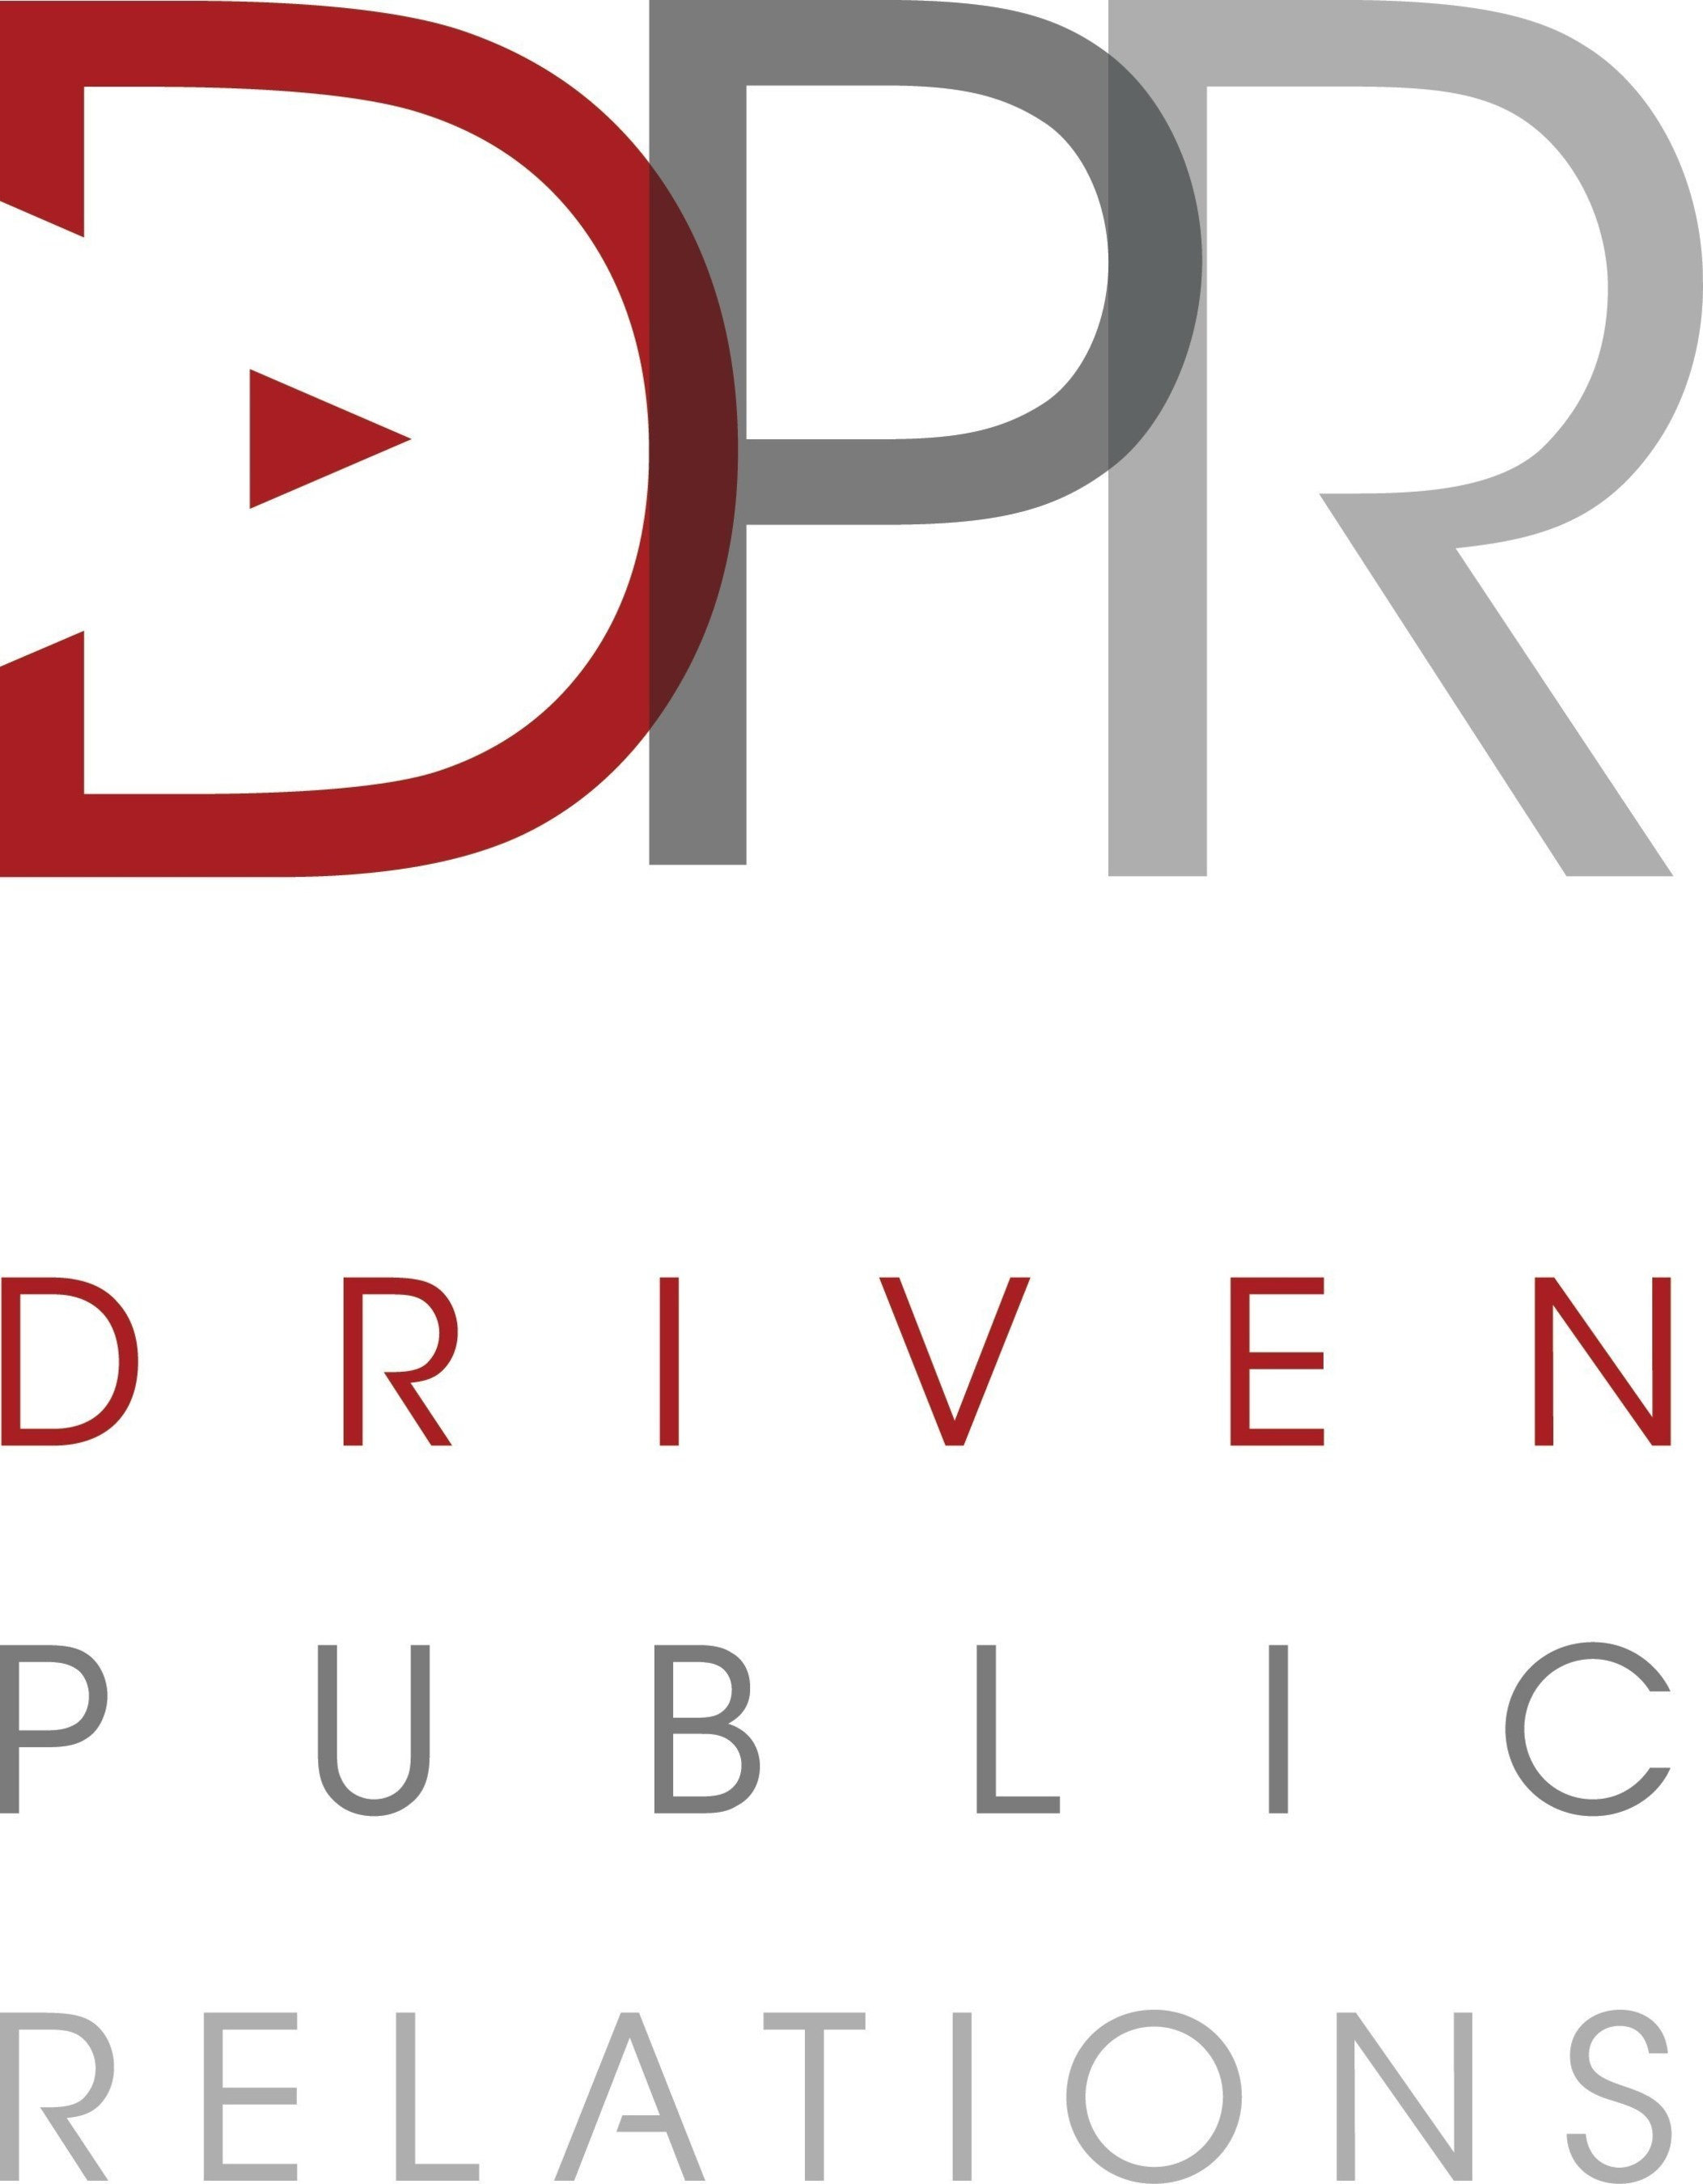 DRIVEN Public Relations is a Southern California based communications and marketing agency with its ...